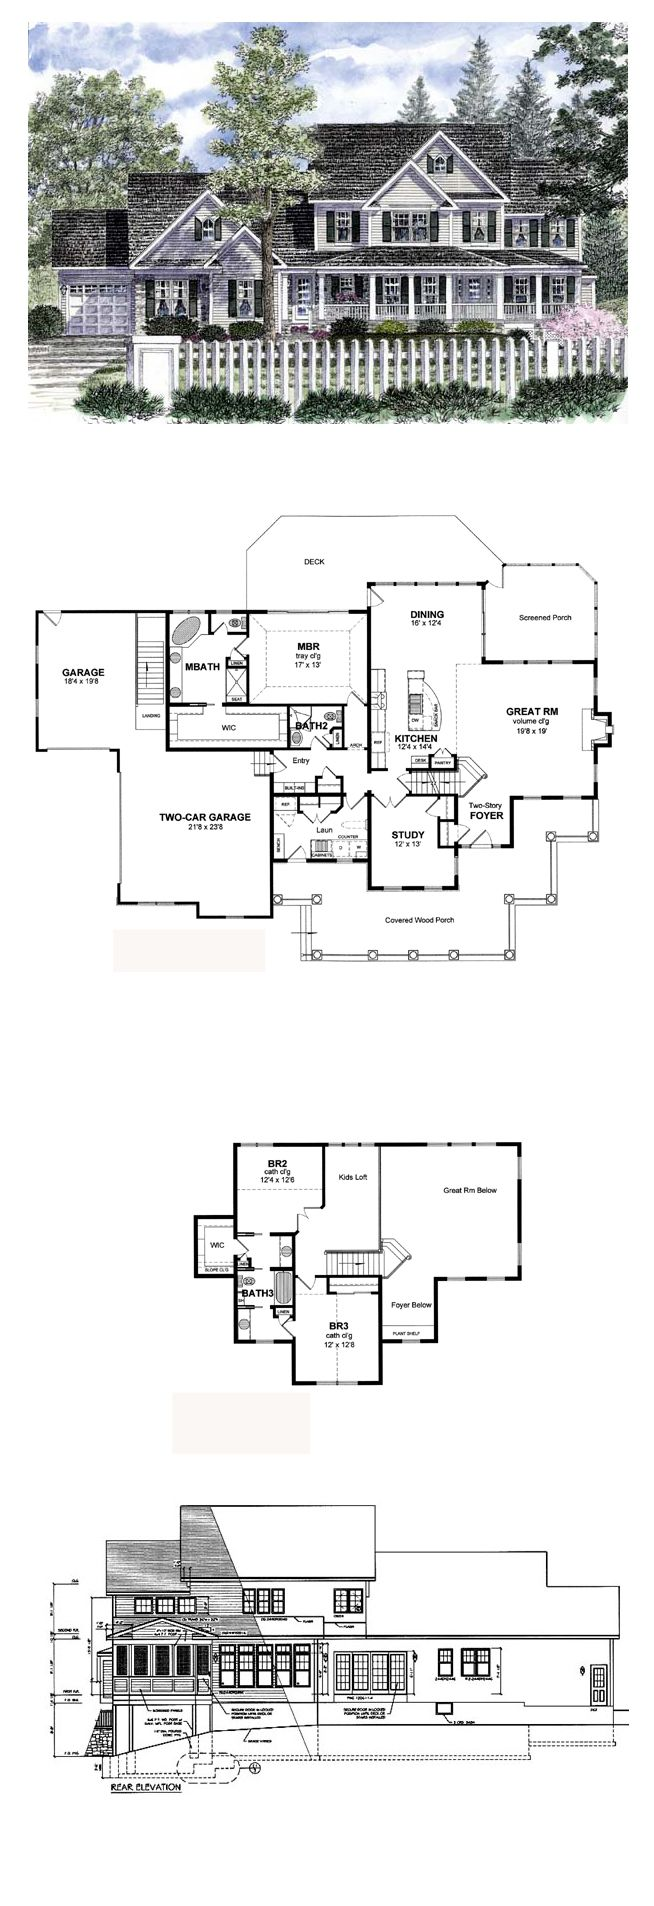 Farmhouse Style COOL House Plan ID chp 36742